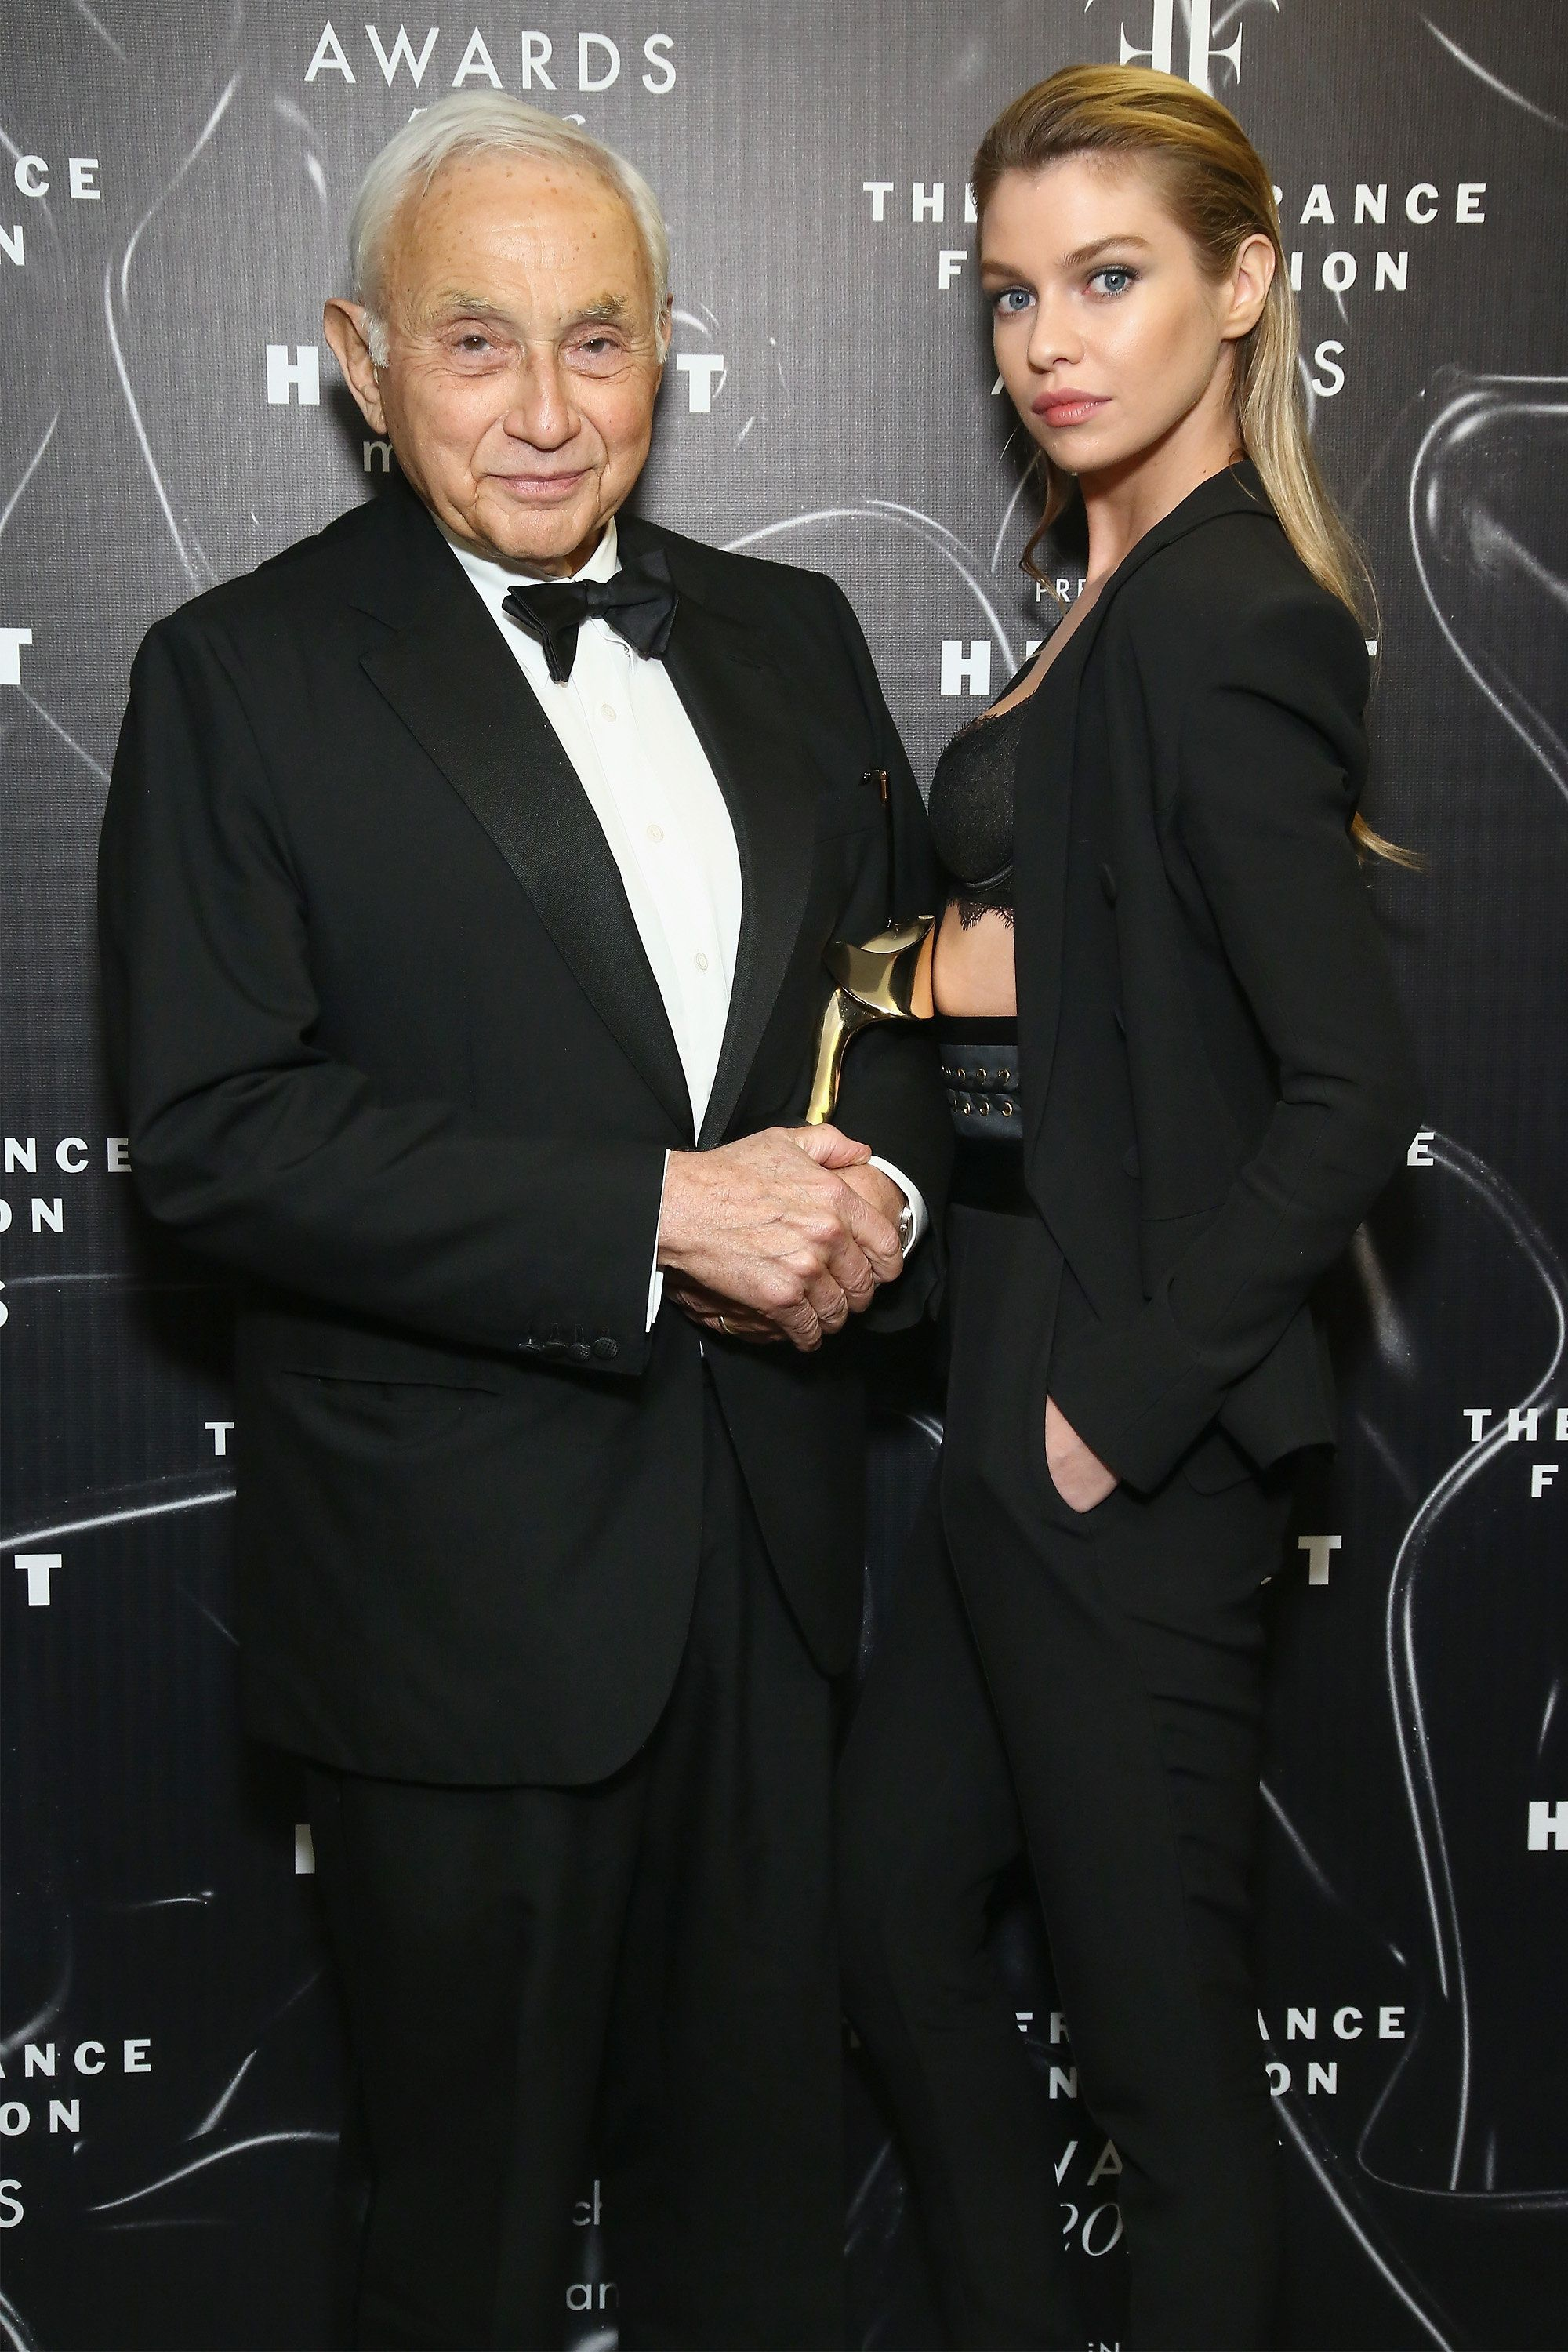 NEW YORK, NY - JUNE 07:  Les Wexner (L) and Stella Maxwell pose at the 2016 Fragrance Foundation Awards presented by Hearst Magazines - Show on June 7, 2016 in New York City.  (Photo by Astrid Stawiarz/Getty Images for Fragrance Foundation)